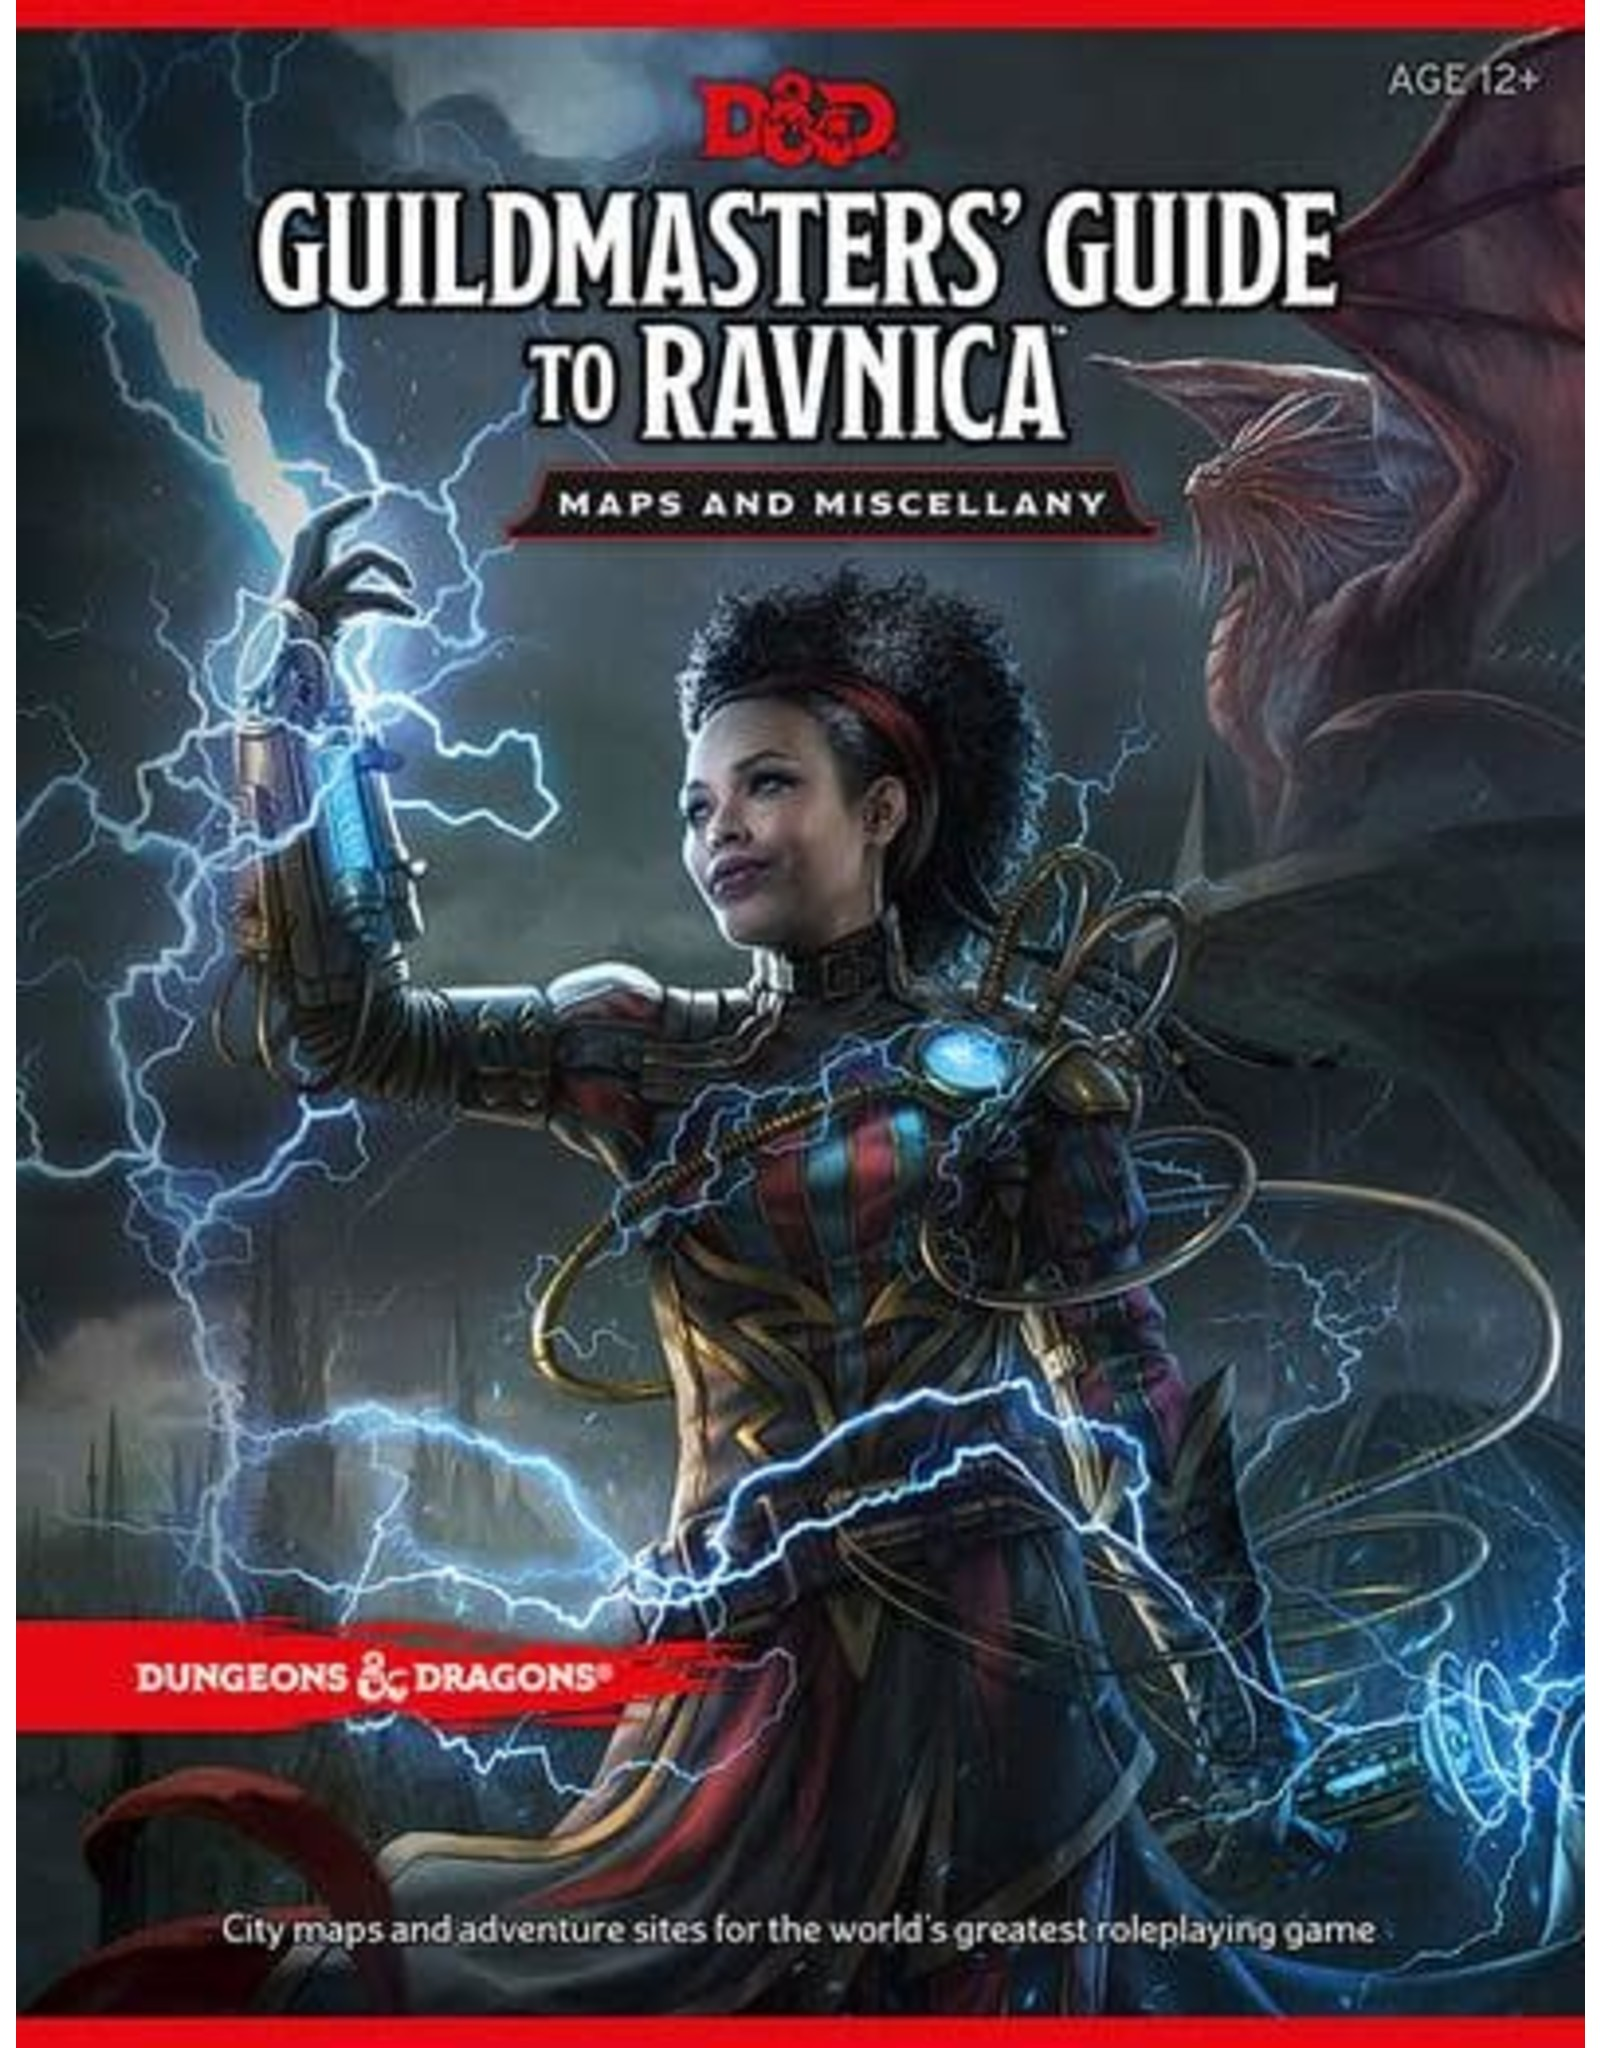 Wizards of the Coast DND RPG GUILDMASTERS GUIDE TO RAVNICA MAP PACK